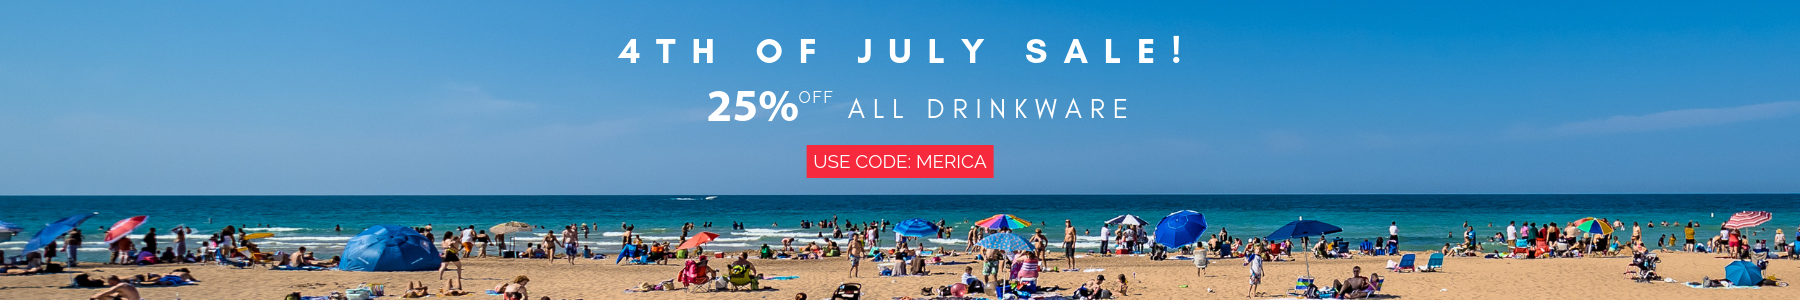 25% off 4th of July